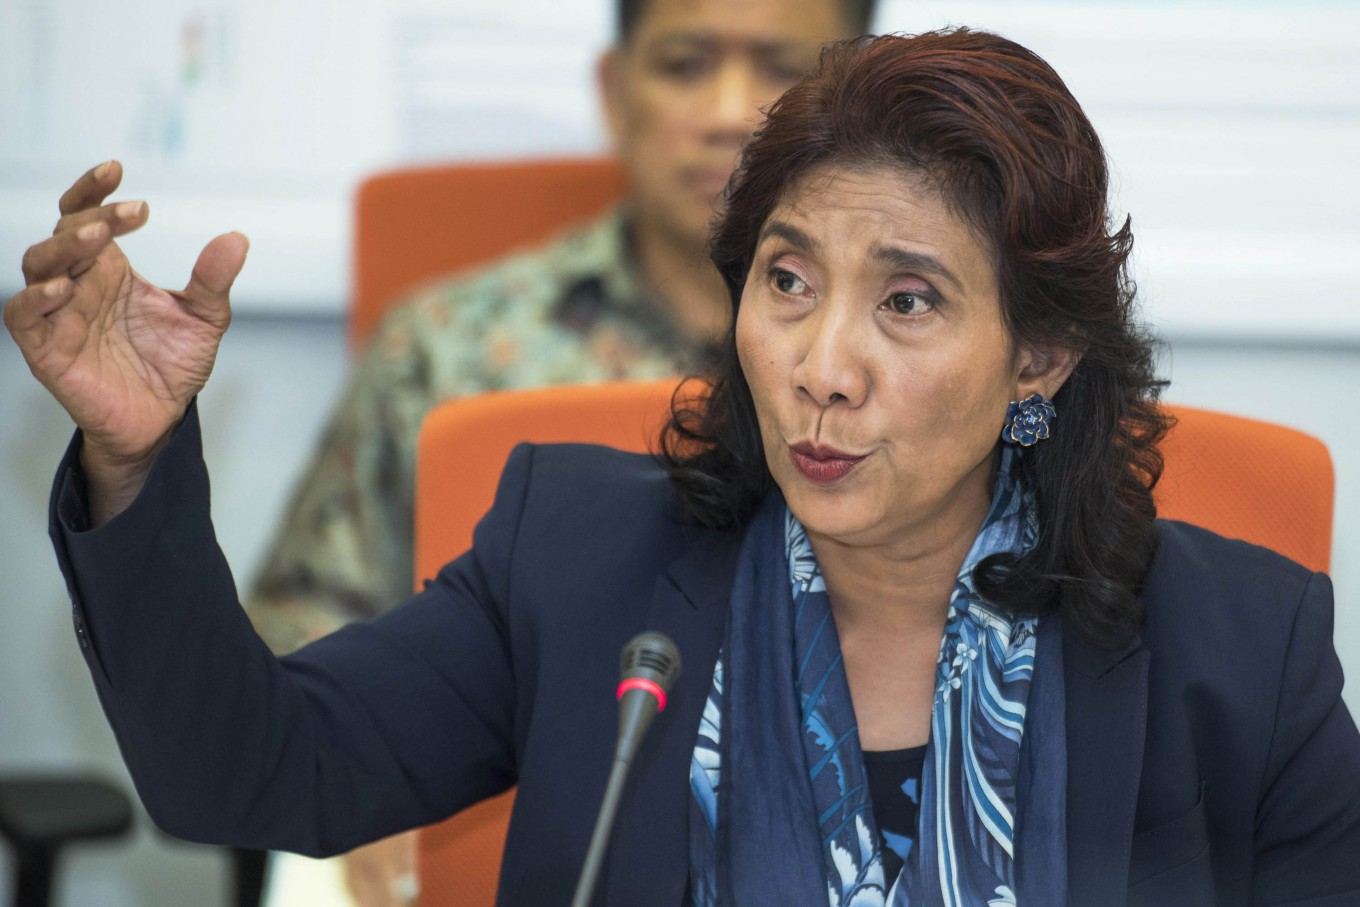 Susi insists on continuing her ship-sinking policy